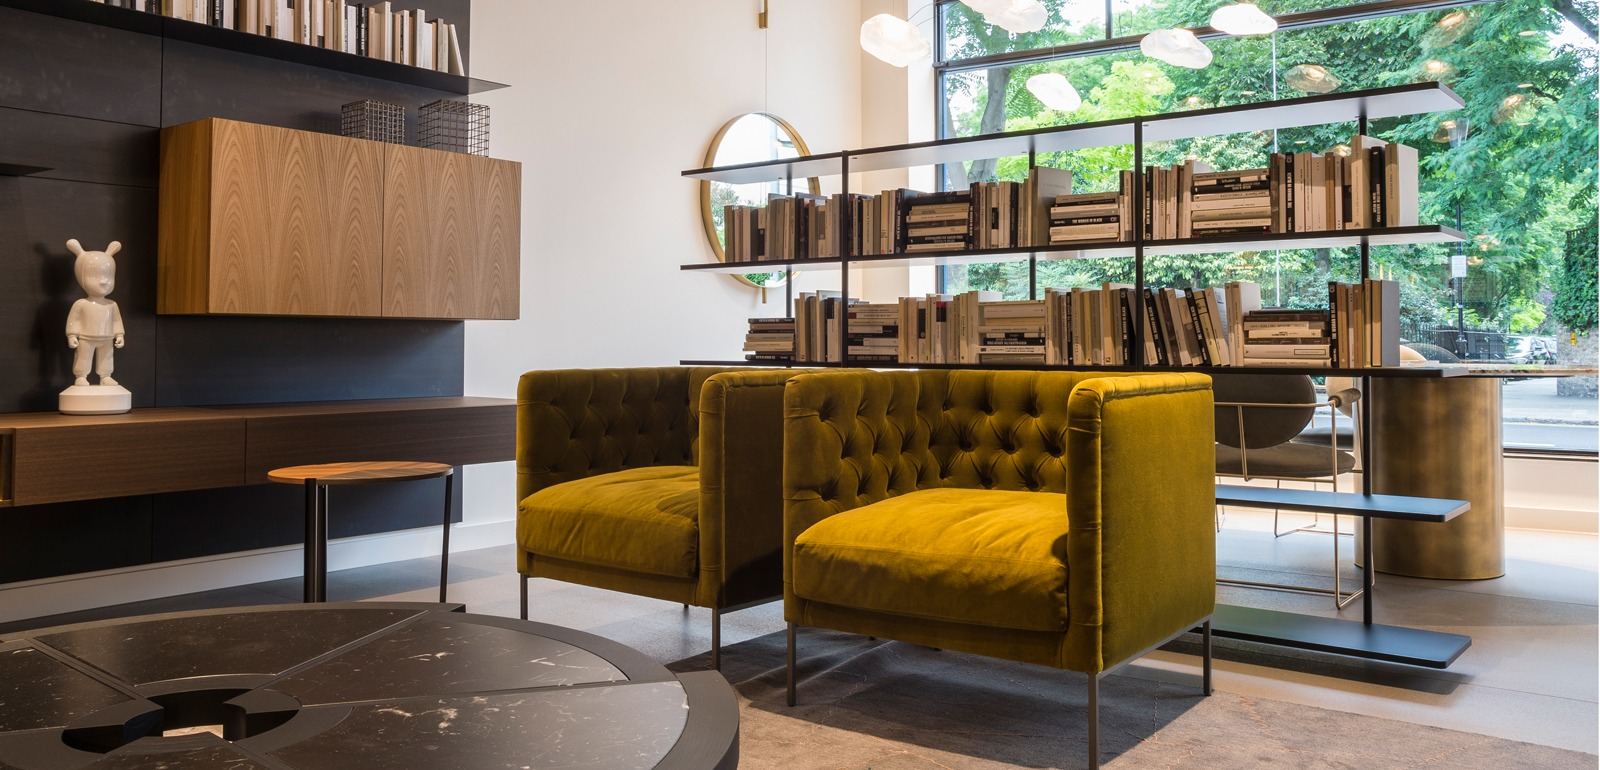 Magasin de meuble design paris mobilier contemporain for Meuble contemporain paris